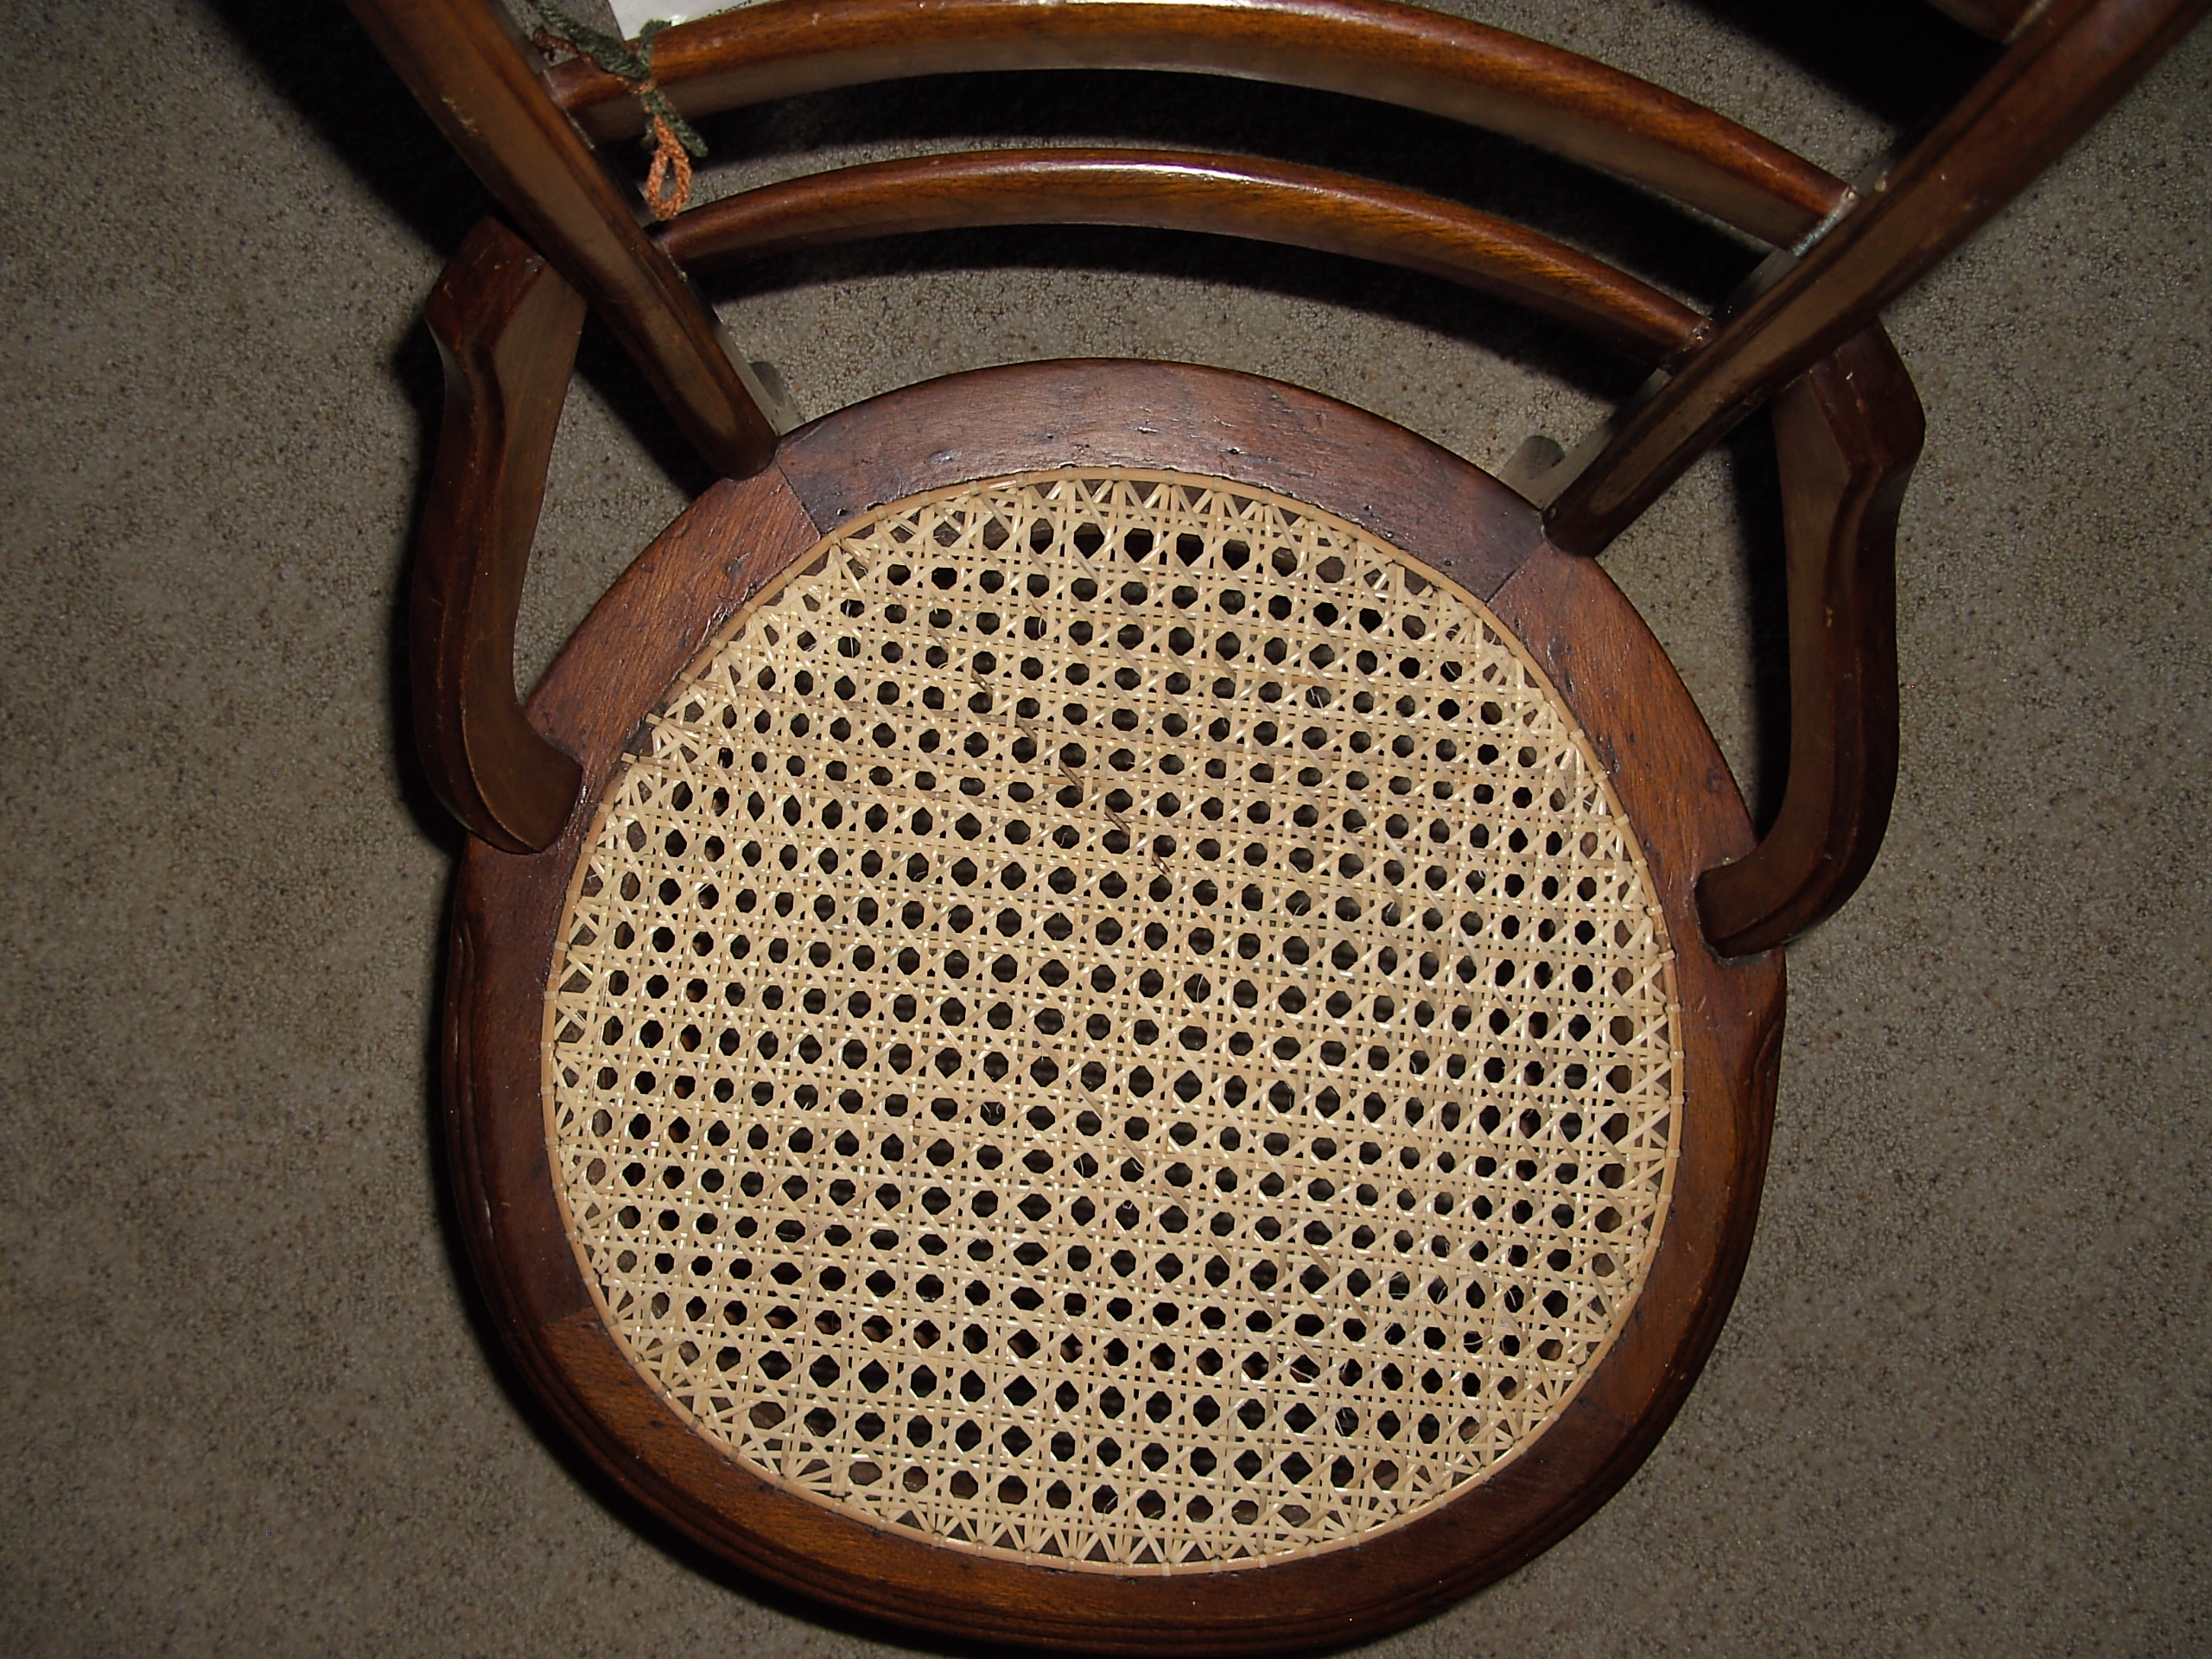 Woven Chair Seat Repair